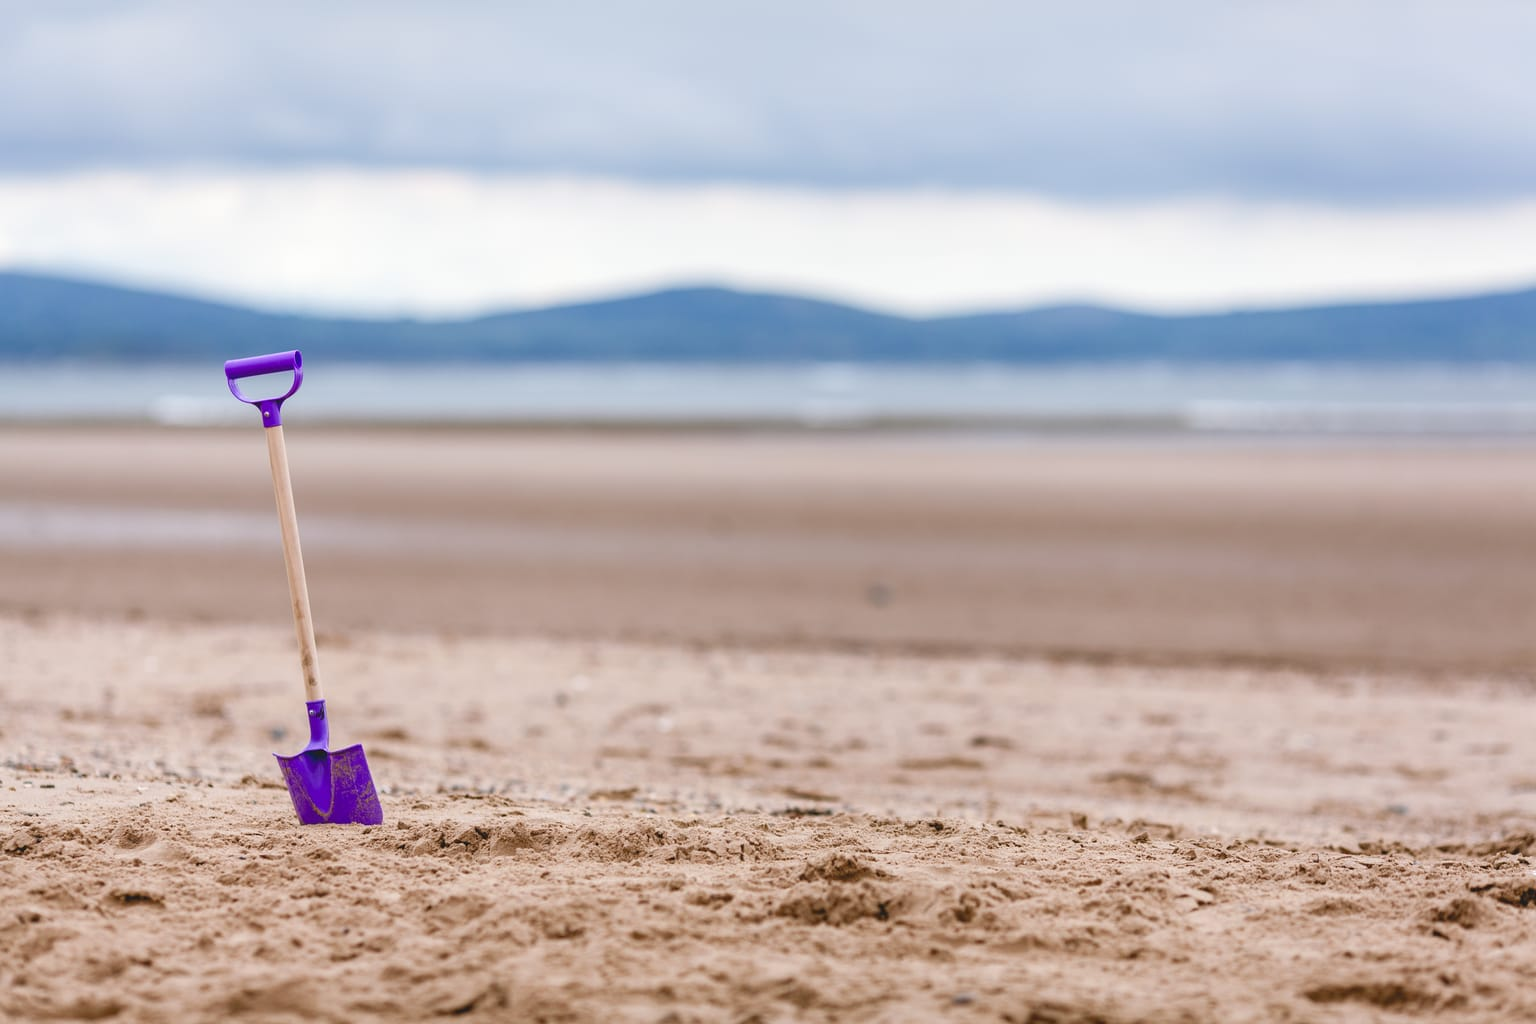 Beach activities: Fun things to do at the beach. Picture of a purple shovel in the sand at a beach.